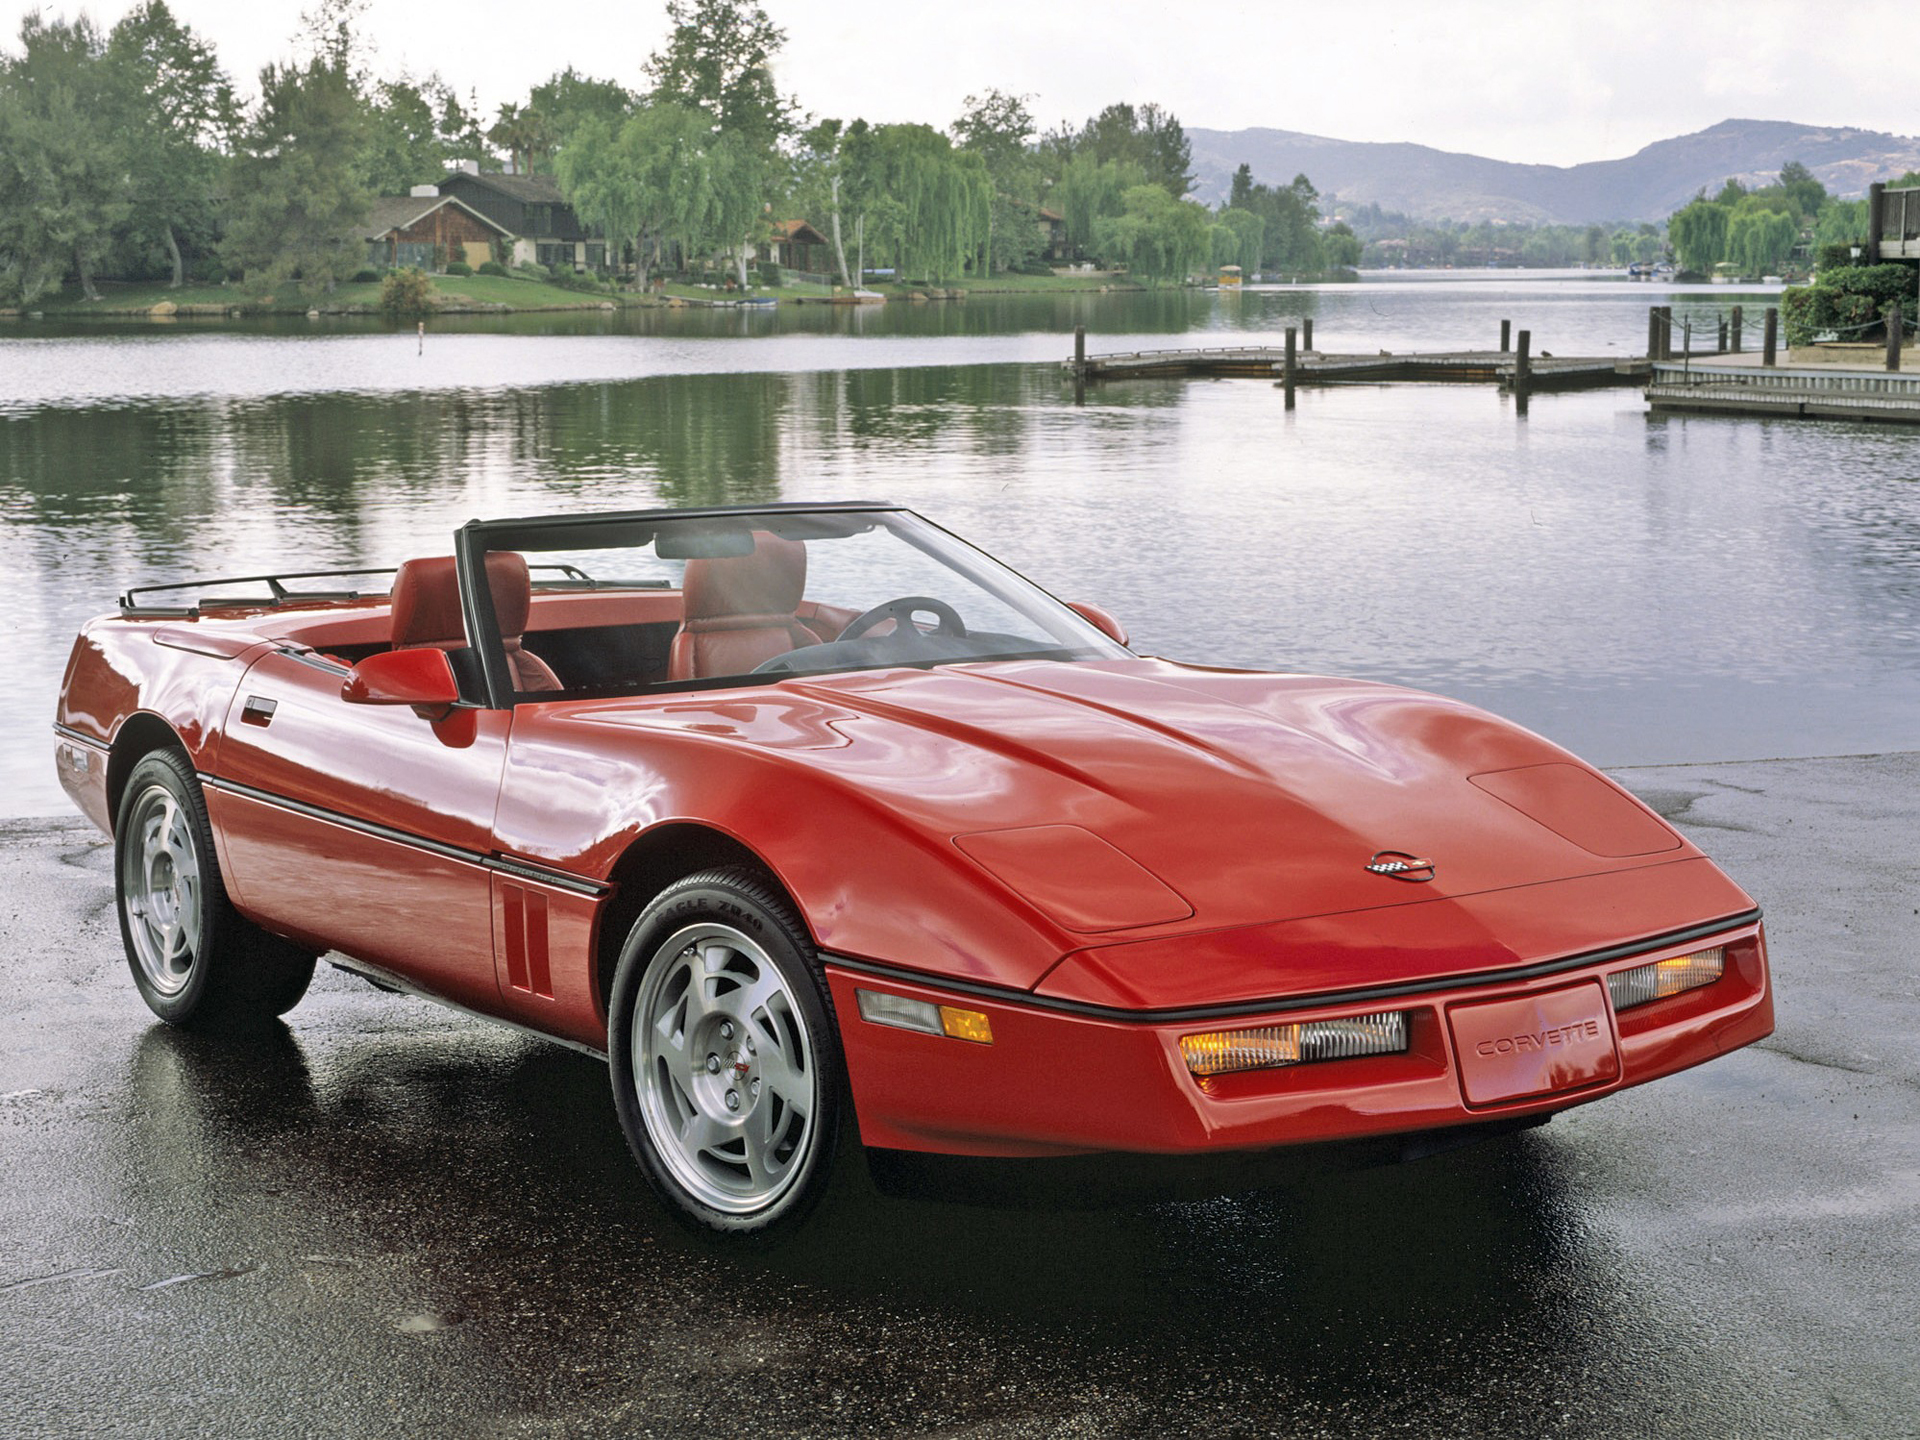 Red Convertible Corvette C4 With Red Leather Interior